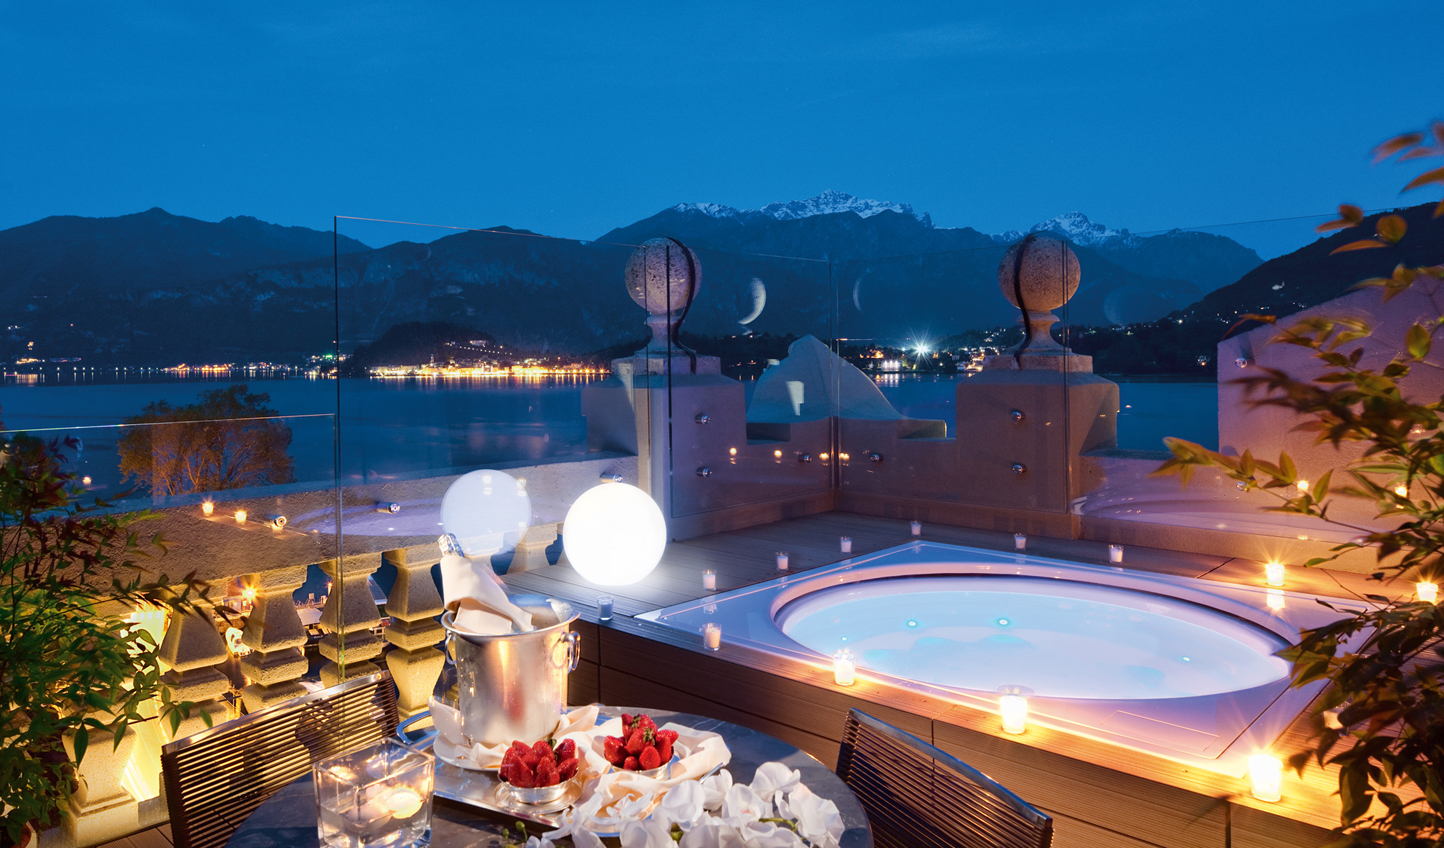 For a special occasion, you can't beat the Rooftop Corner Suite with its private plunge pool